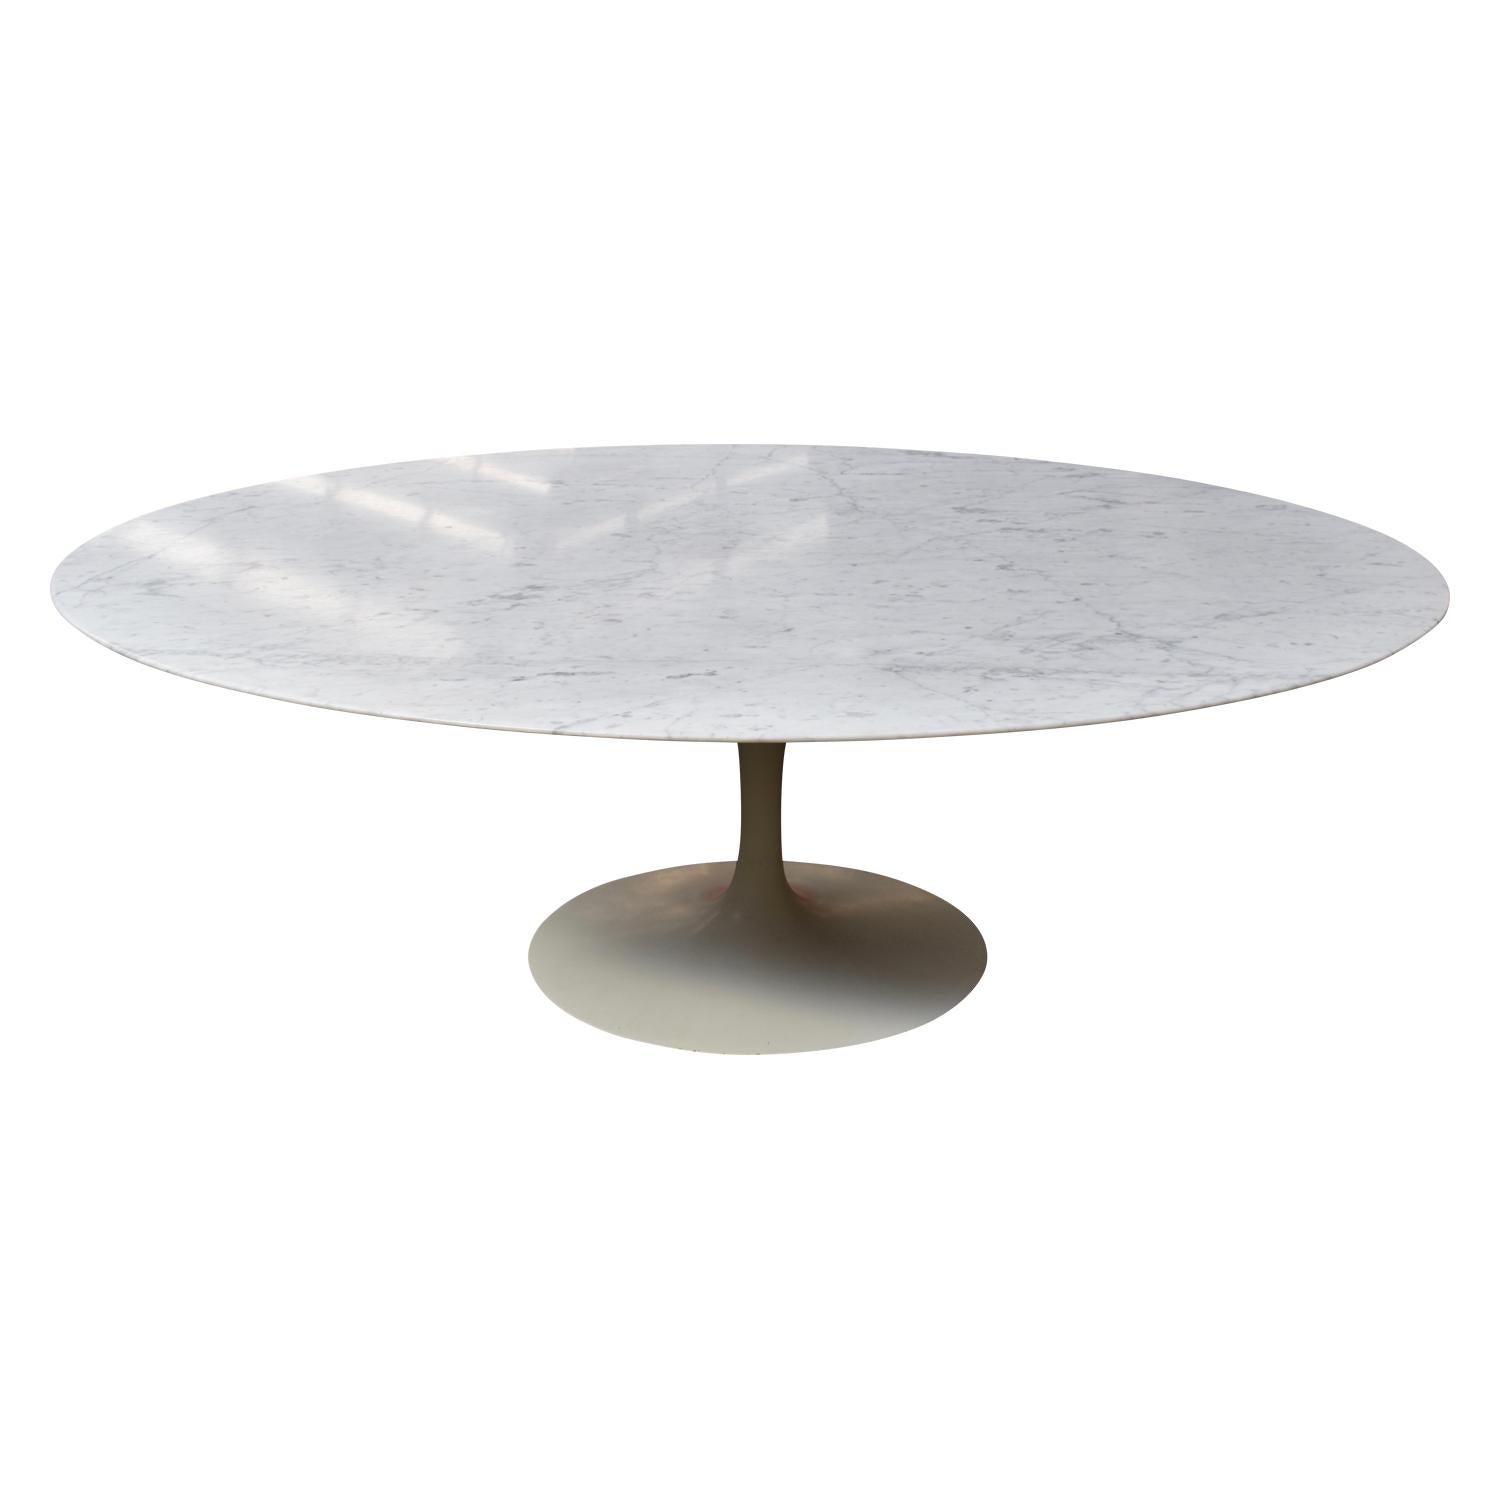 Oval Carrara Marble Dining Table By Eero Saarinen For Knoll For Sale - Saarinen carrara marble table